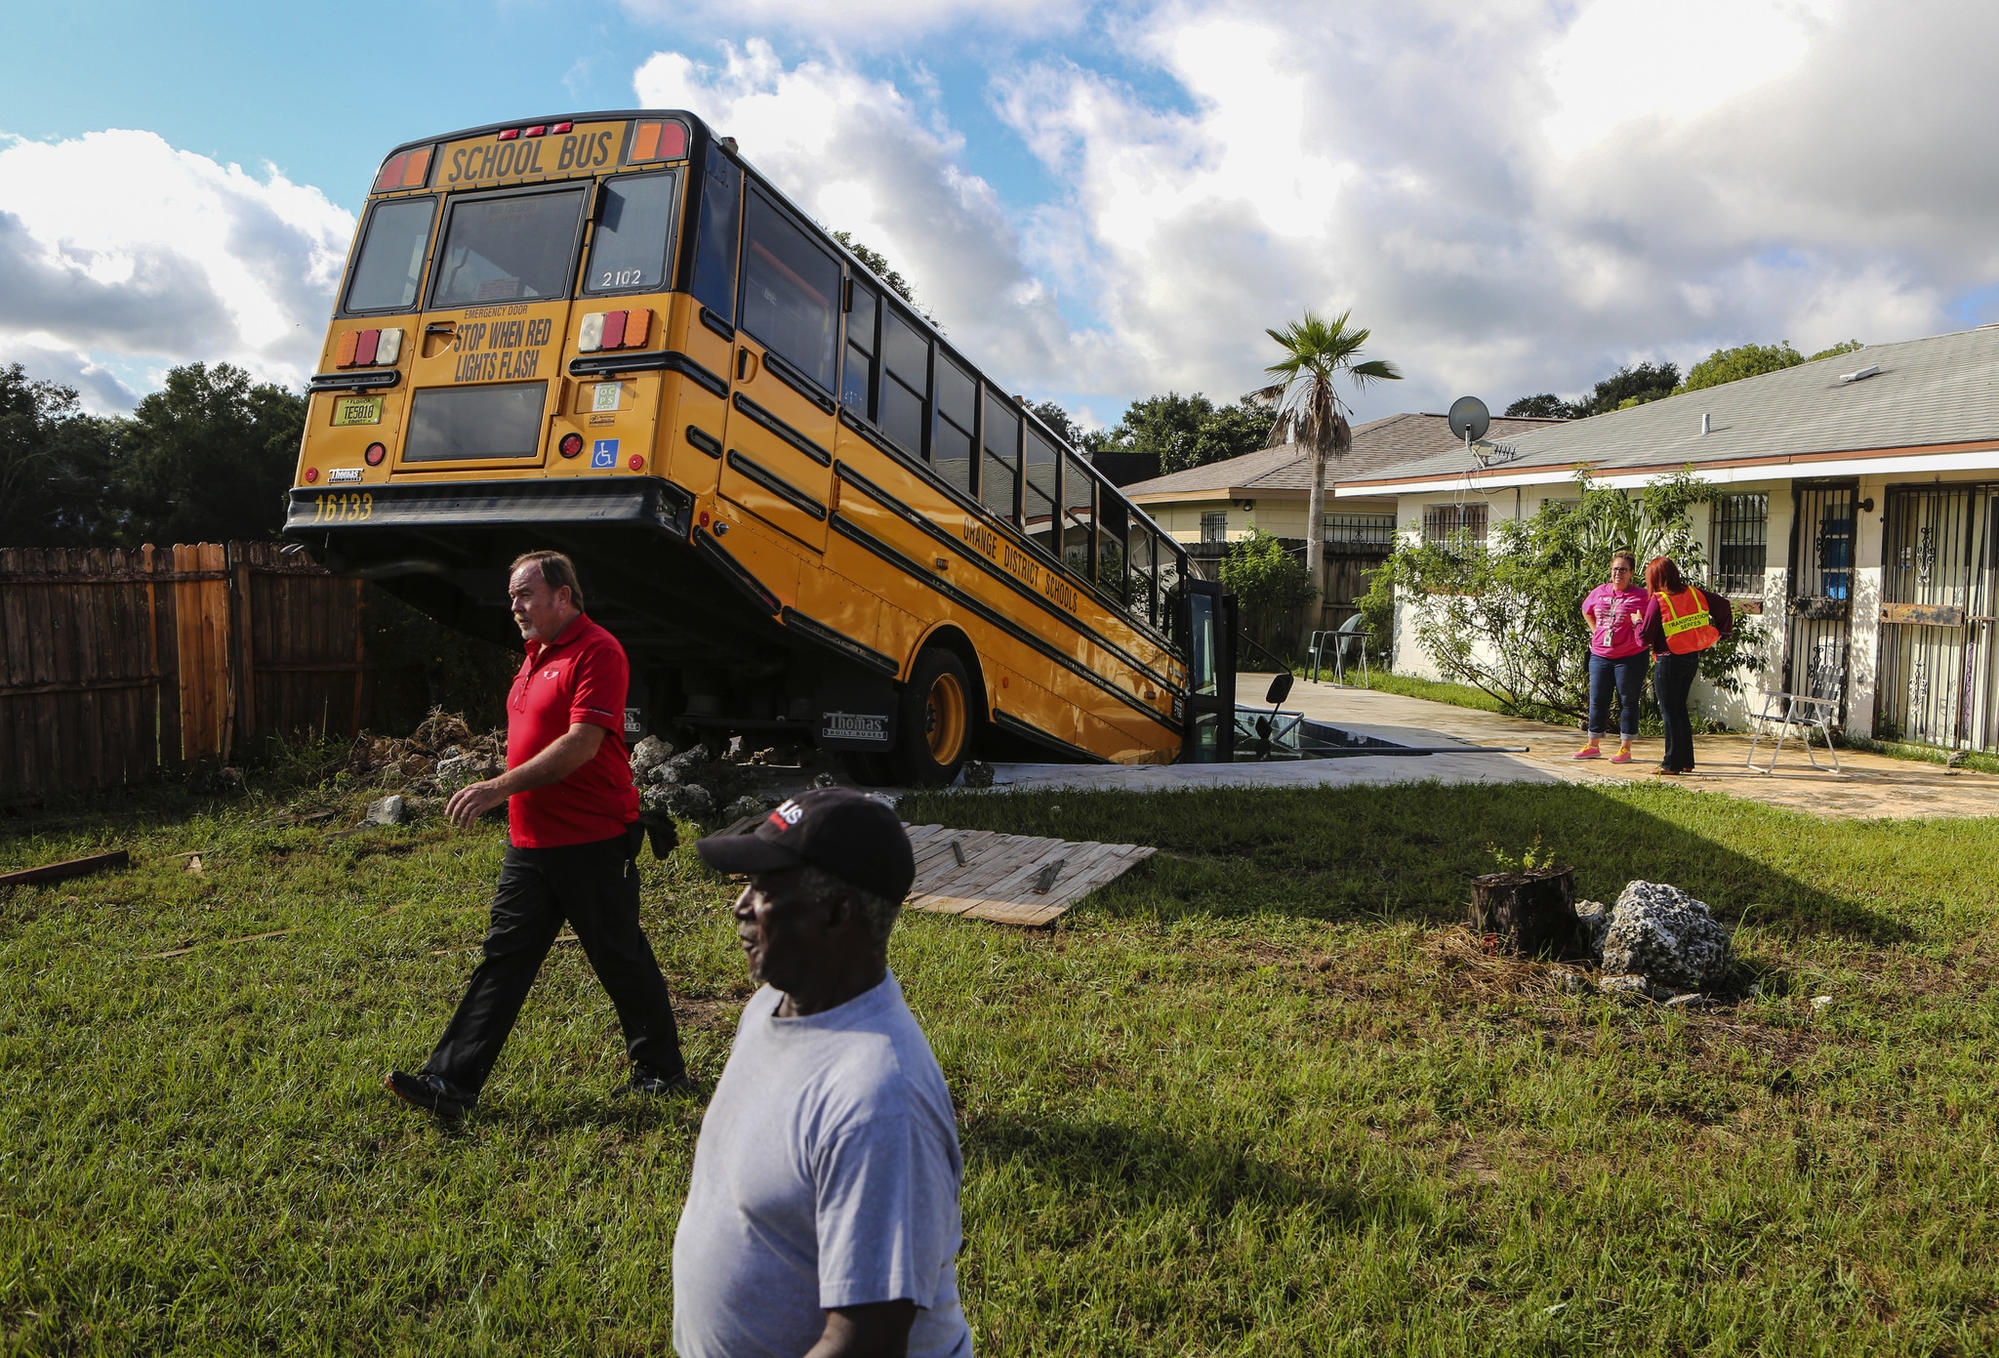 Both Drivers Ticketed In Crash That Sent School Bus Into